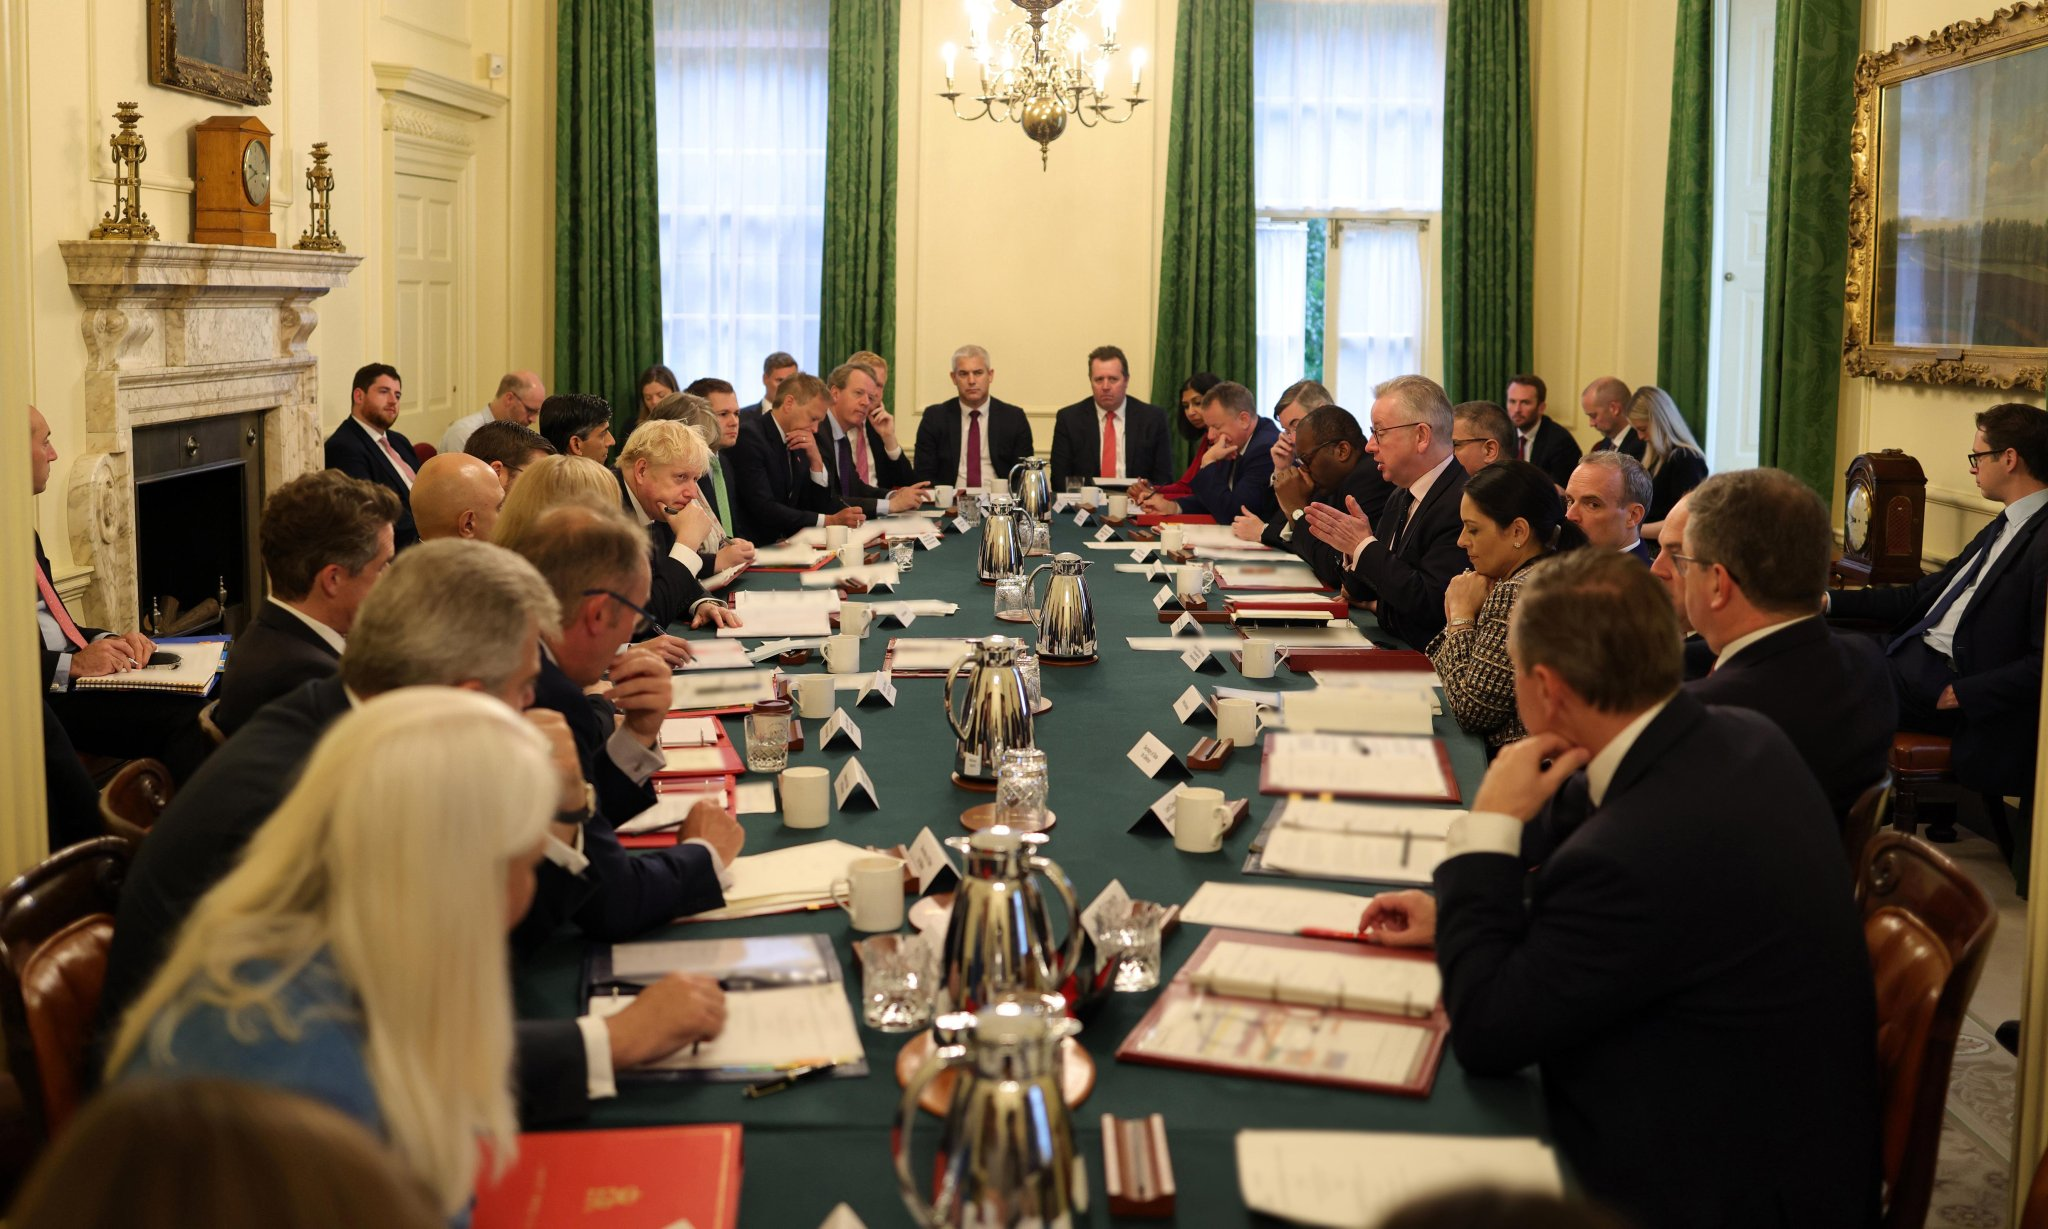 'One rule for them': Boris Johnson criticised for maskless cabinet meeting